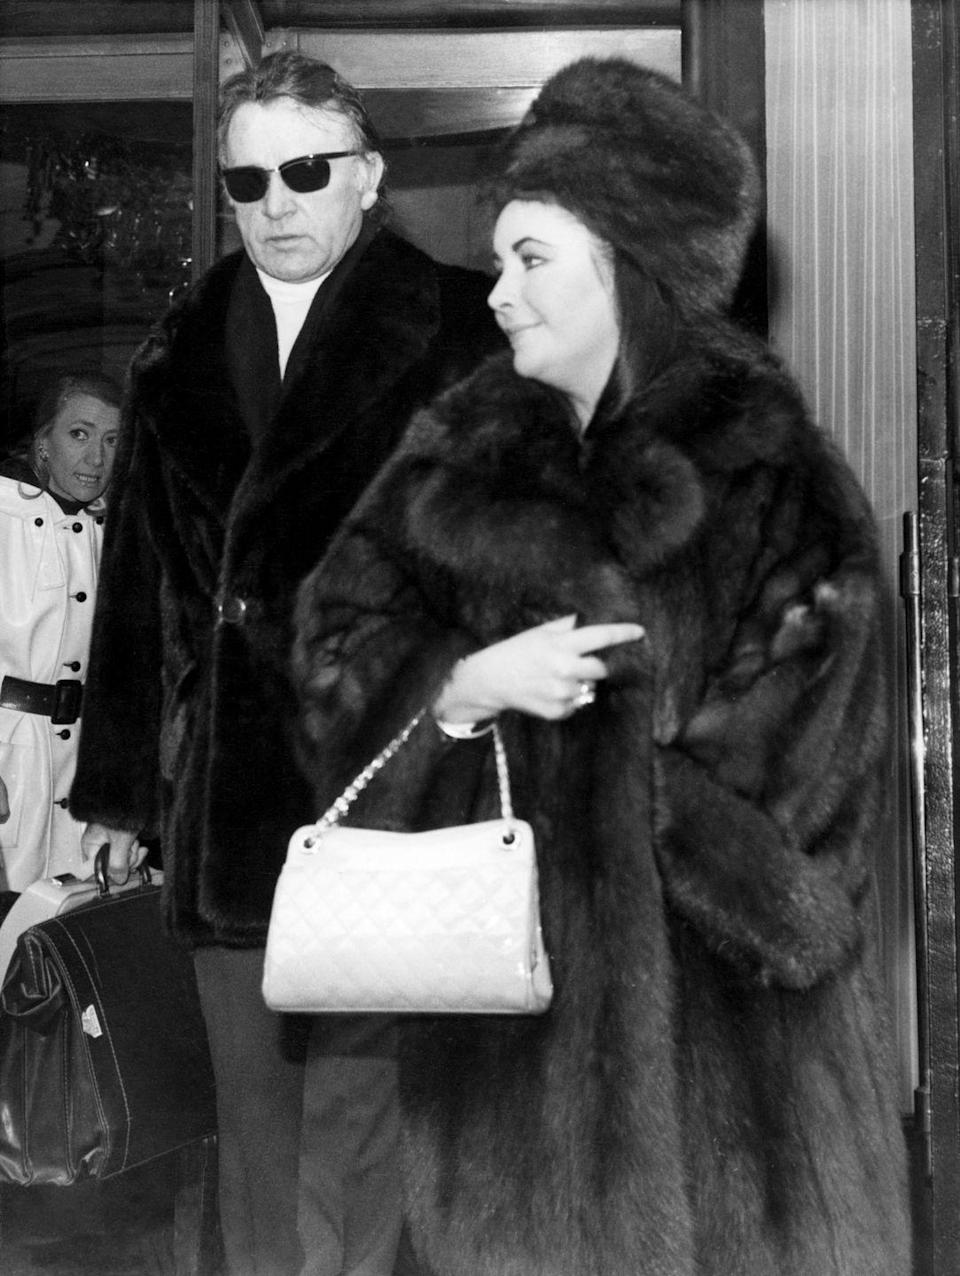 <p>Elizabeth Taylor and Richard Burton (i.e. Liz and Dick) were spotted leaving their hotel in Paris, but her quilted bag really stole the show. The pattern was widely popular and seen on practically every purse. </p>